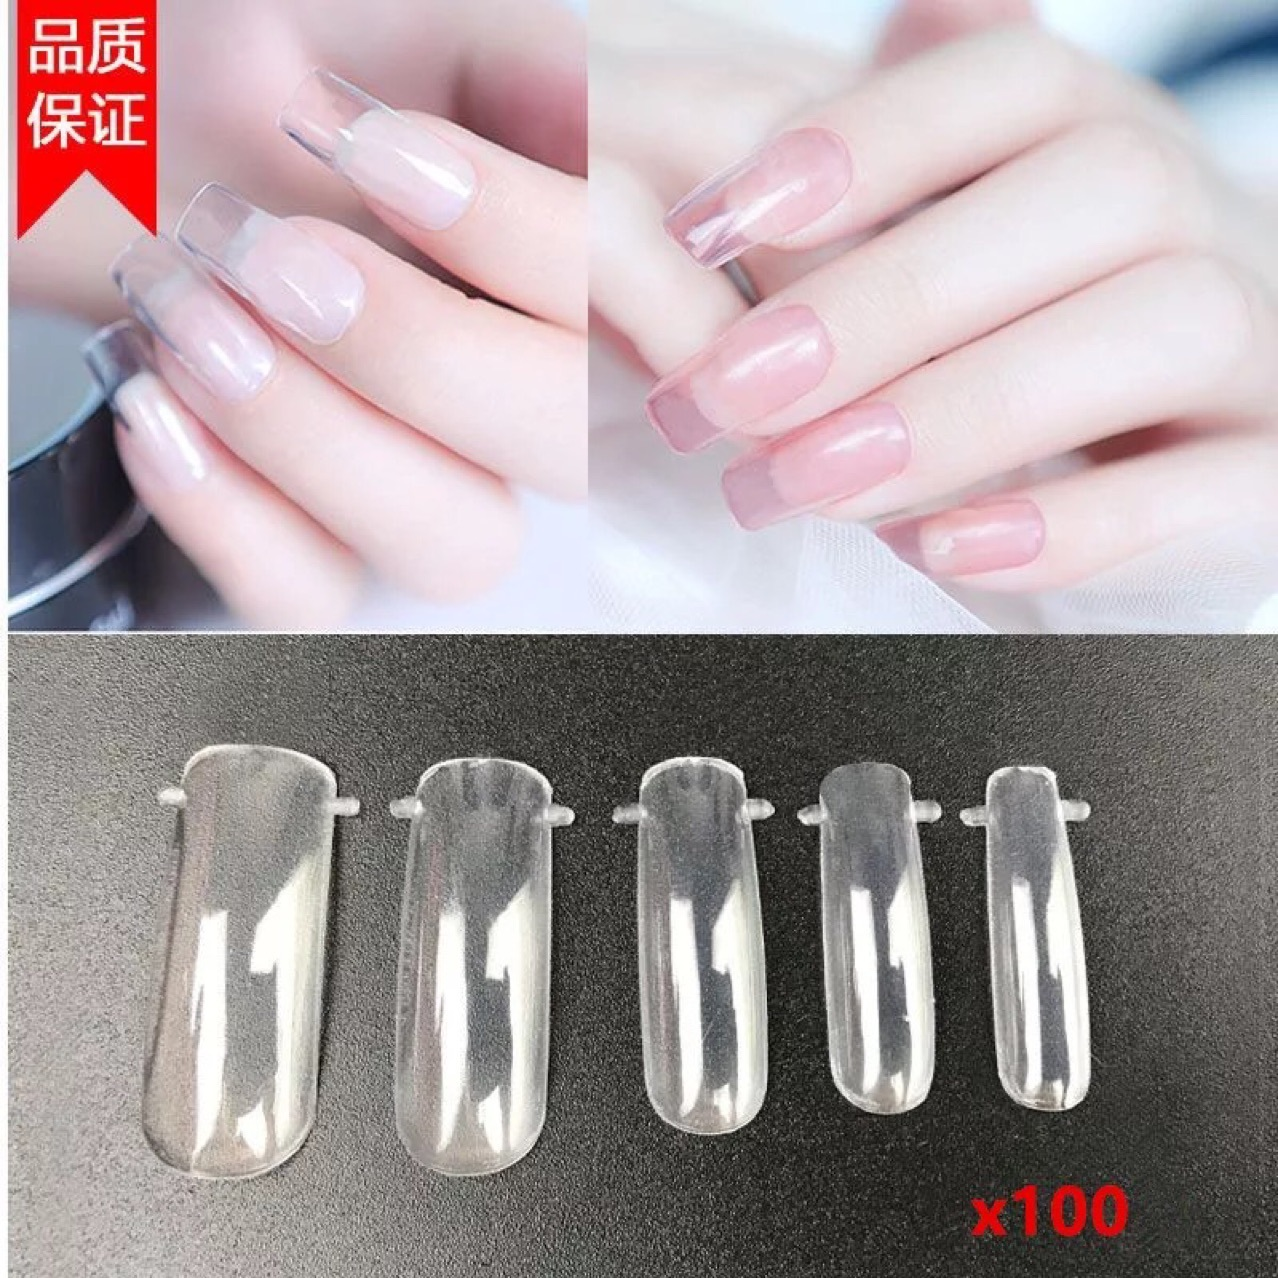 Manicure Fast Phototherapy Extension Nail Tip Crystal Nail Mode Ultra-Thin Transparent Extend Sticker A Mode